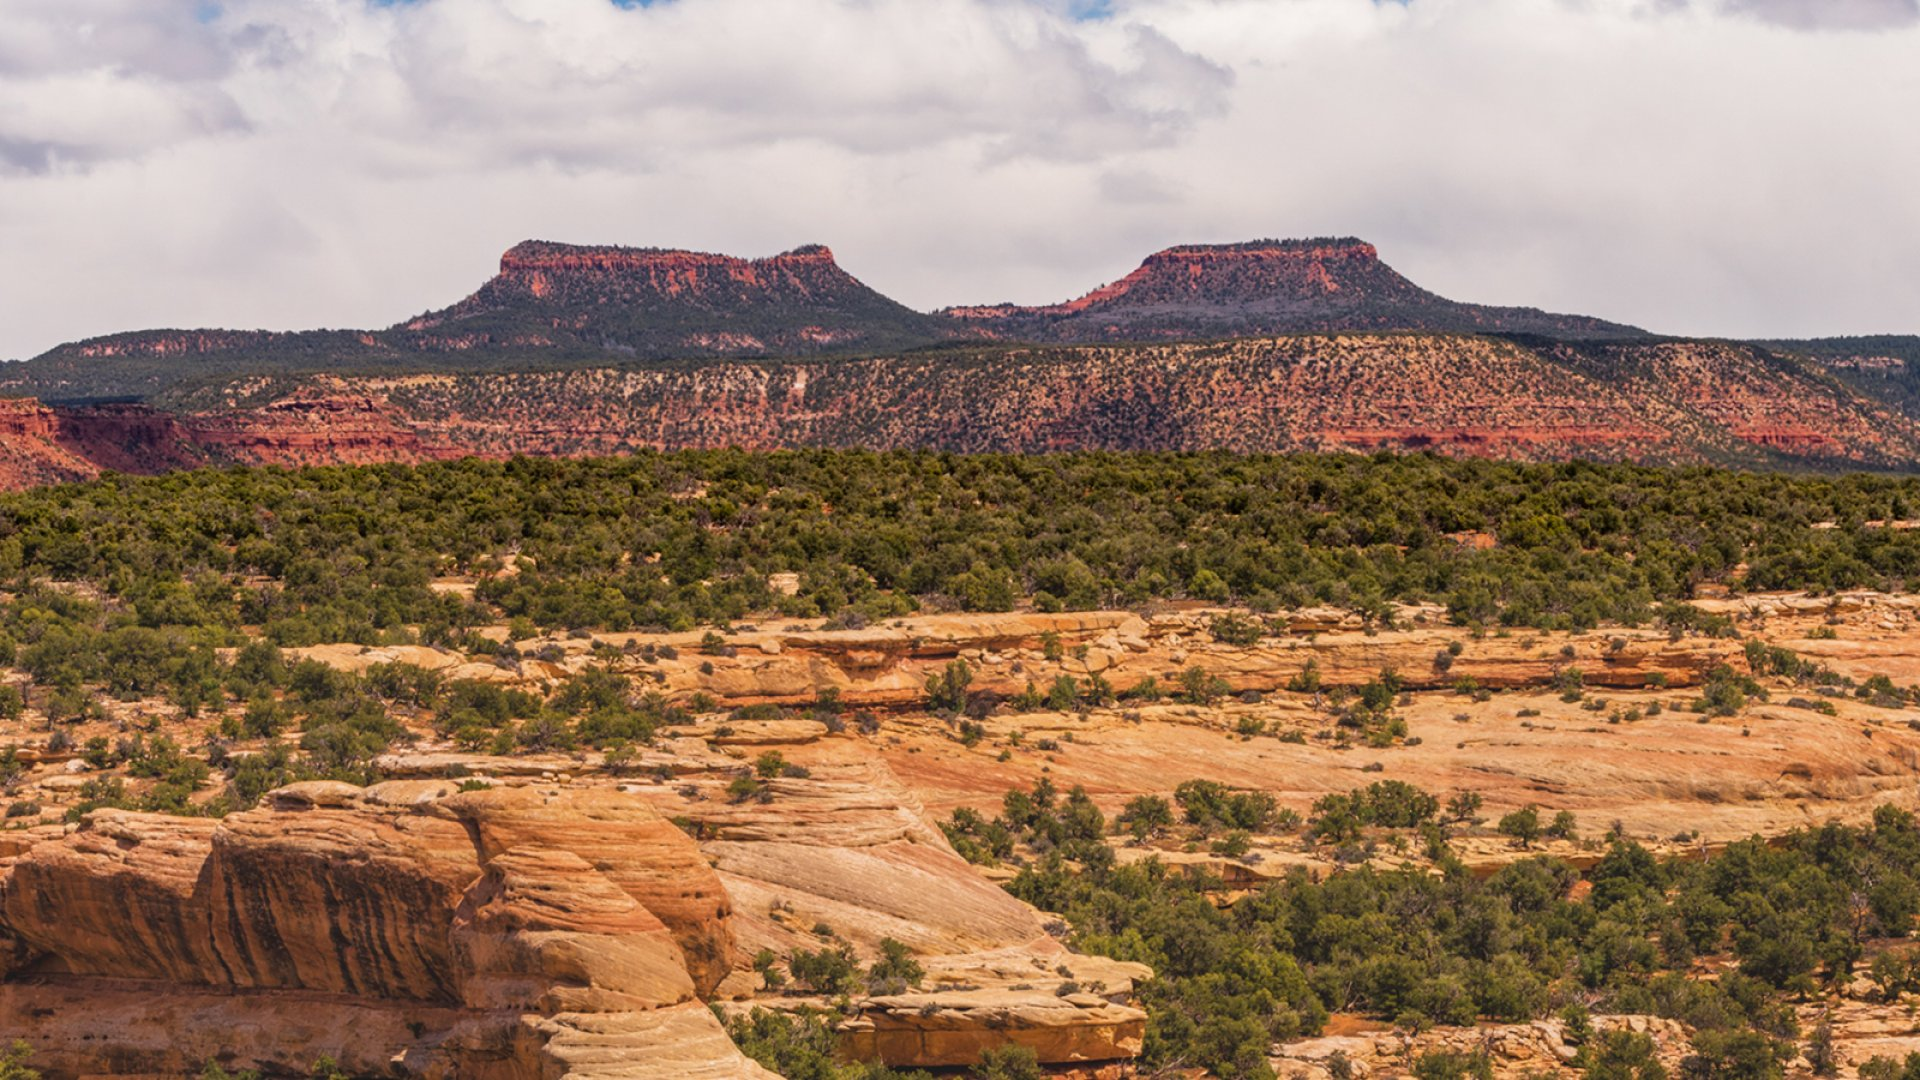 Patagonia along with the North Face and REI said they would boycott the annual Outdoor Retailer trade show usually hosted in Salt Lake City after Trump's decision to shrink Bears Ears National Monument (pictured here).